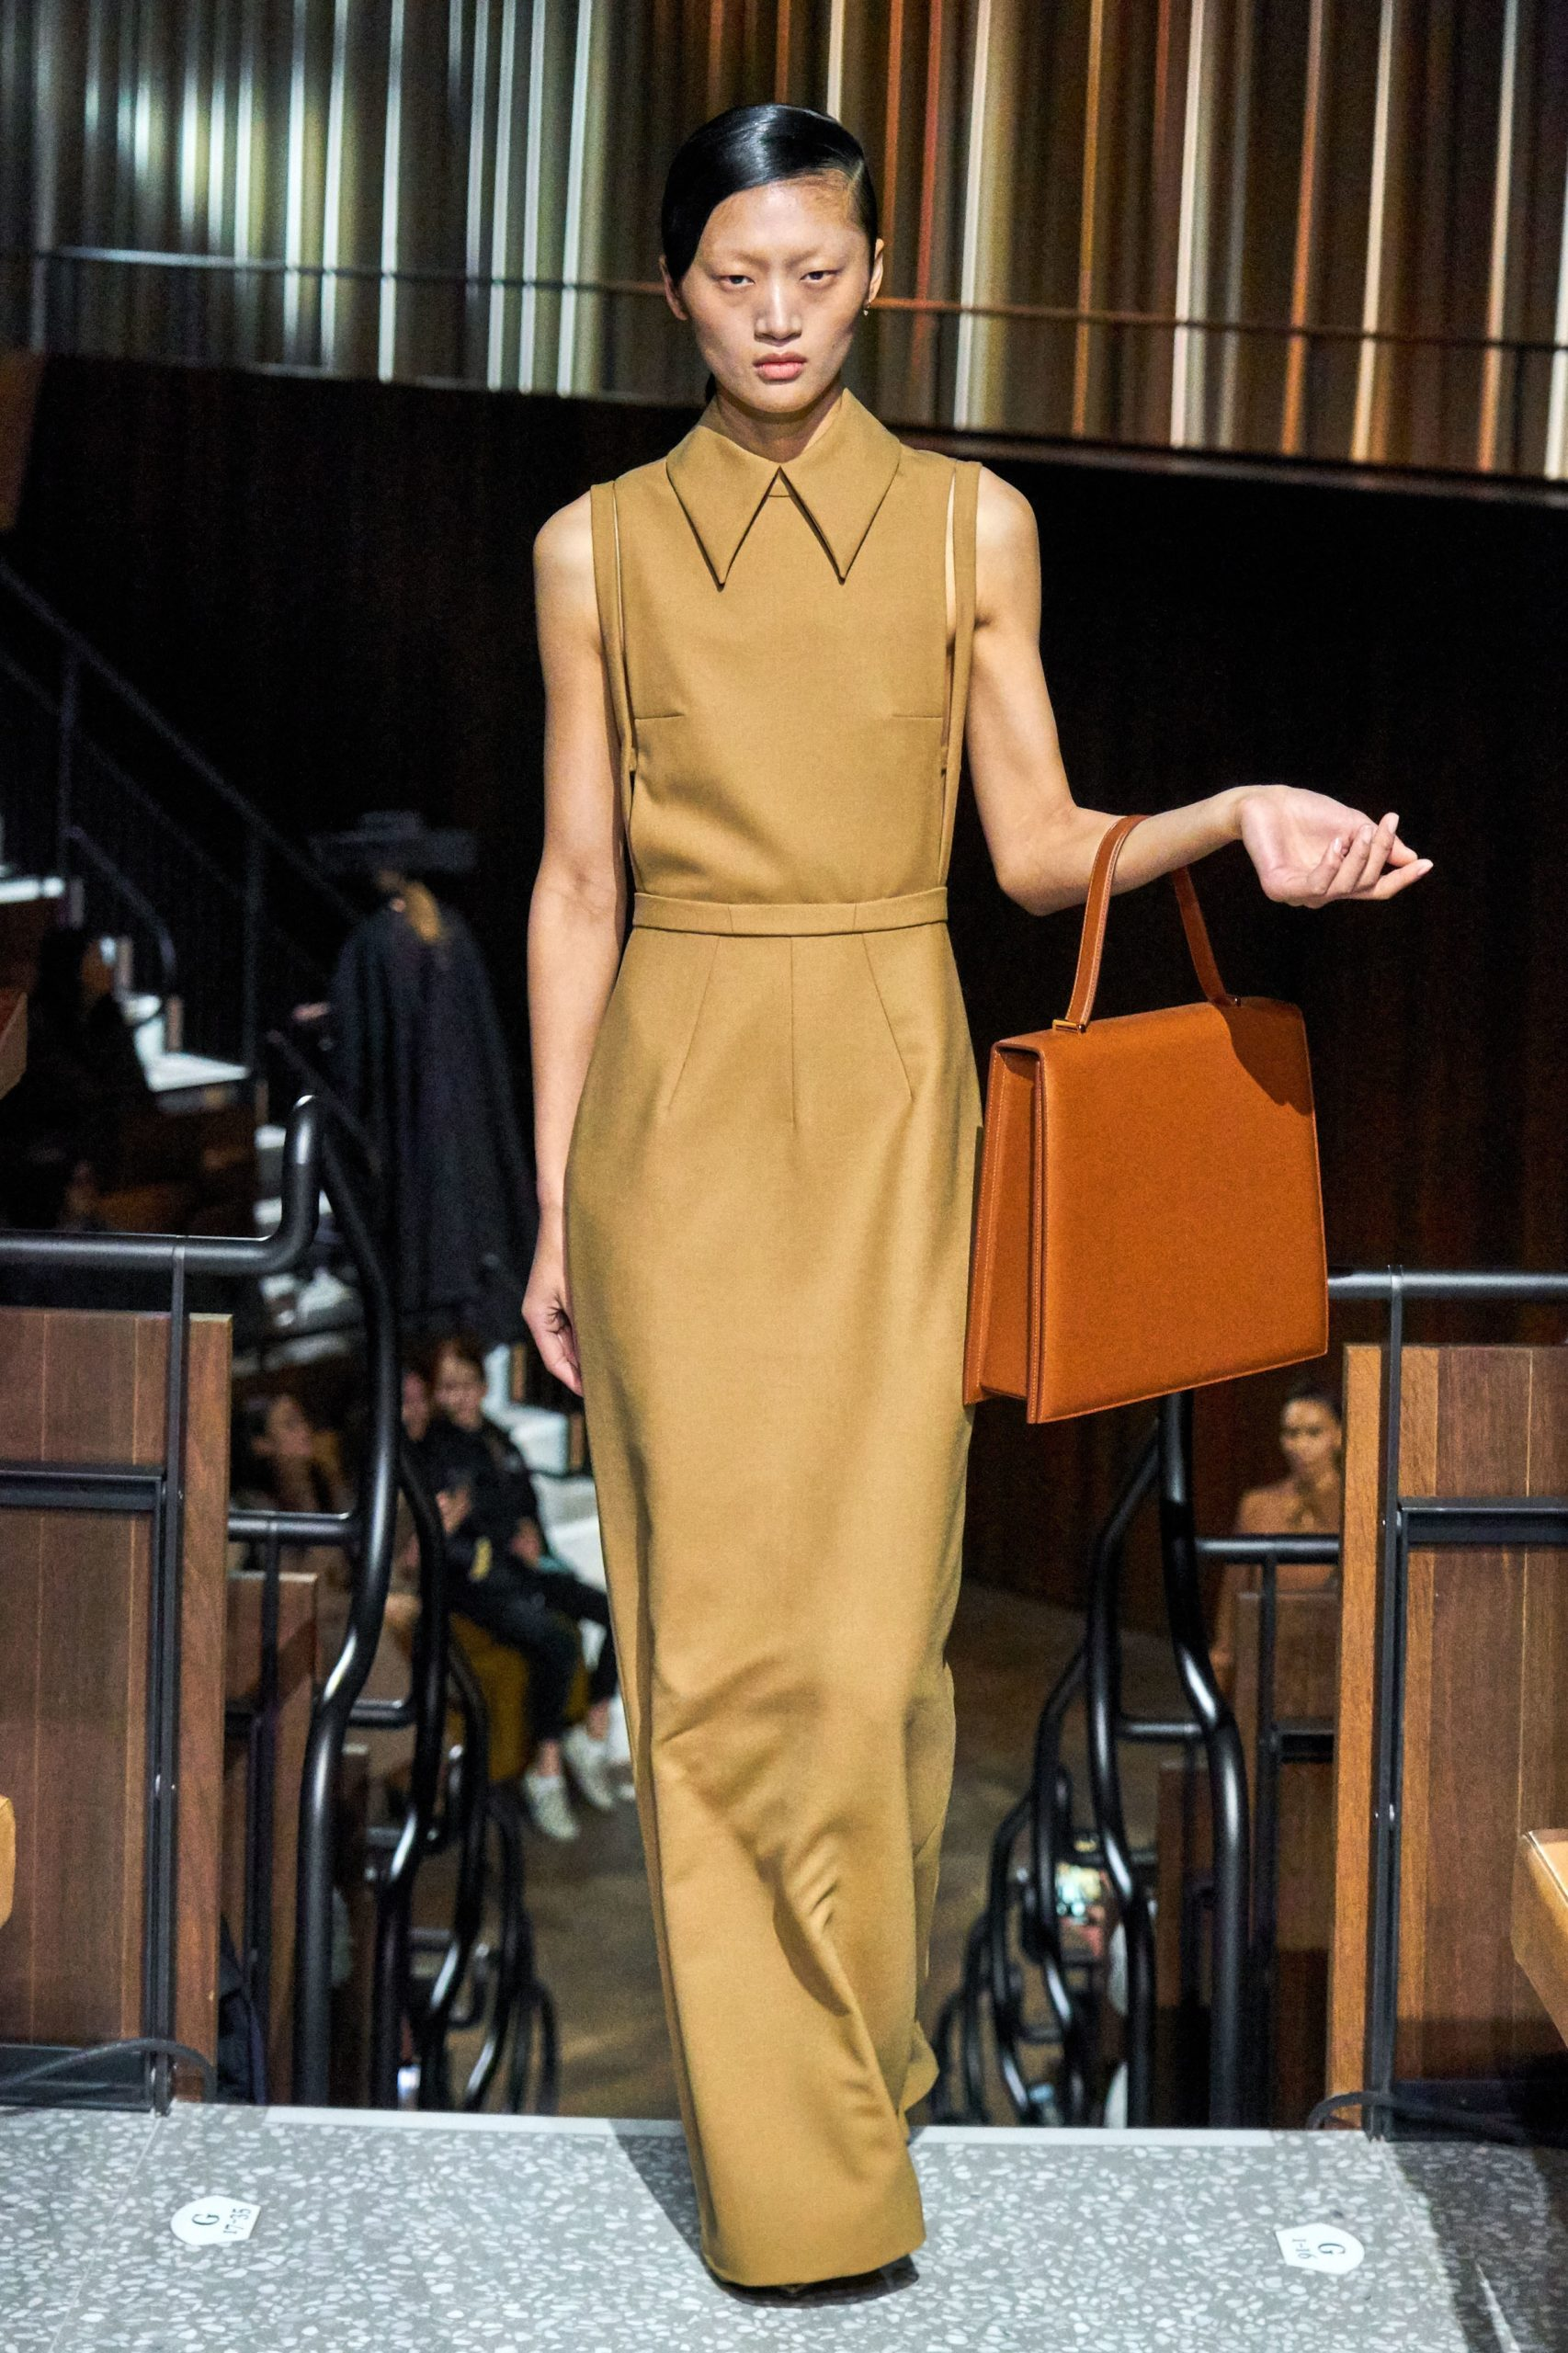 Emilia Wickstead Fall 2020 trends runway report Ready To Wear Vogue brown monochrome